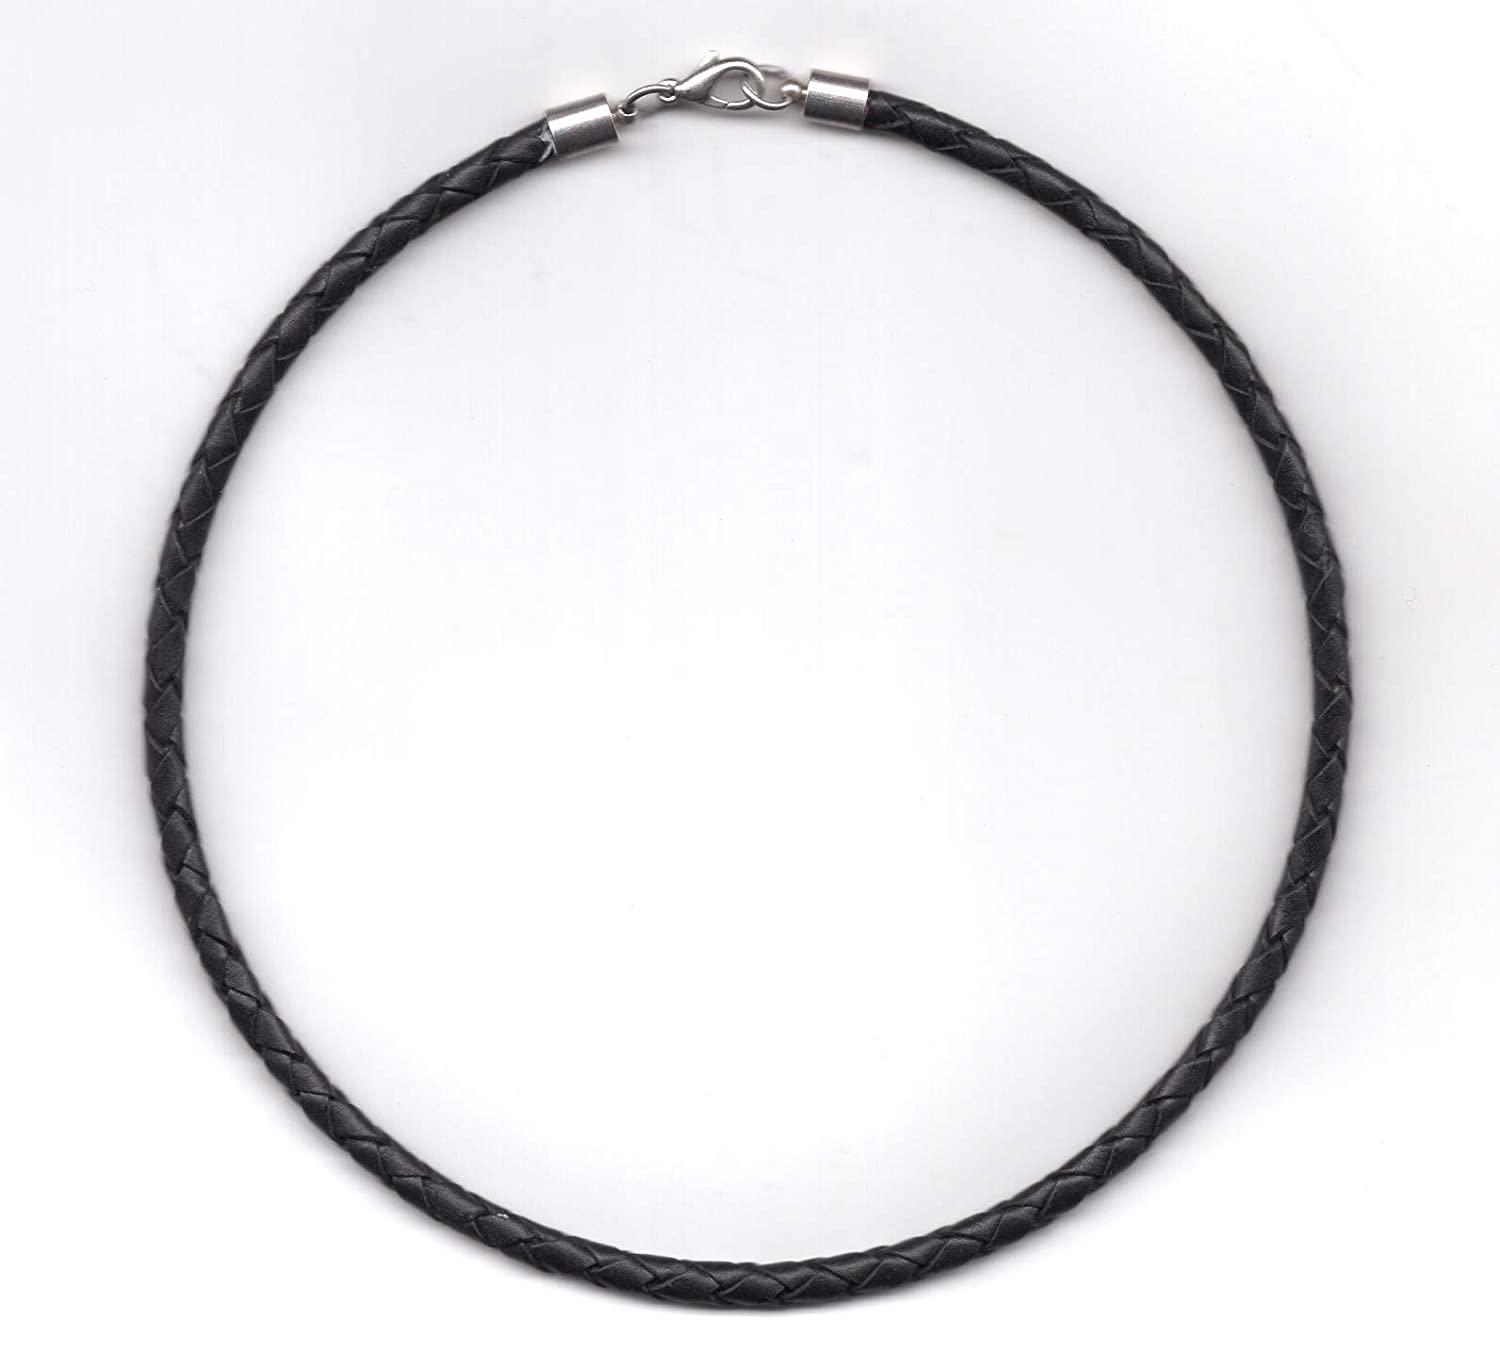 19 5 mm Black Braided Leather Cord Necklace for Men Women Silver Plaited End Caps-by Greek Crafts Silver Plaited End Caps